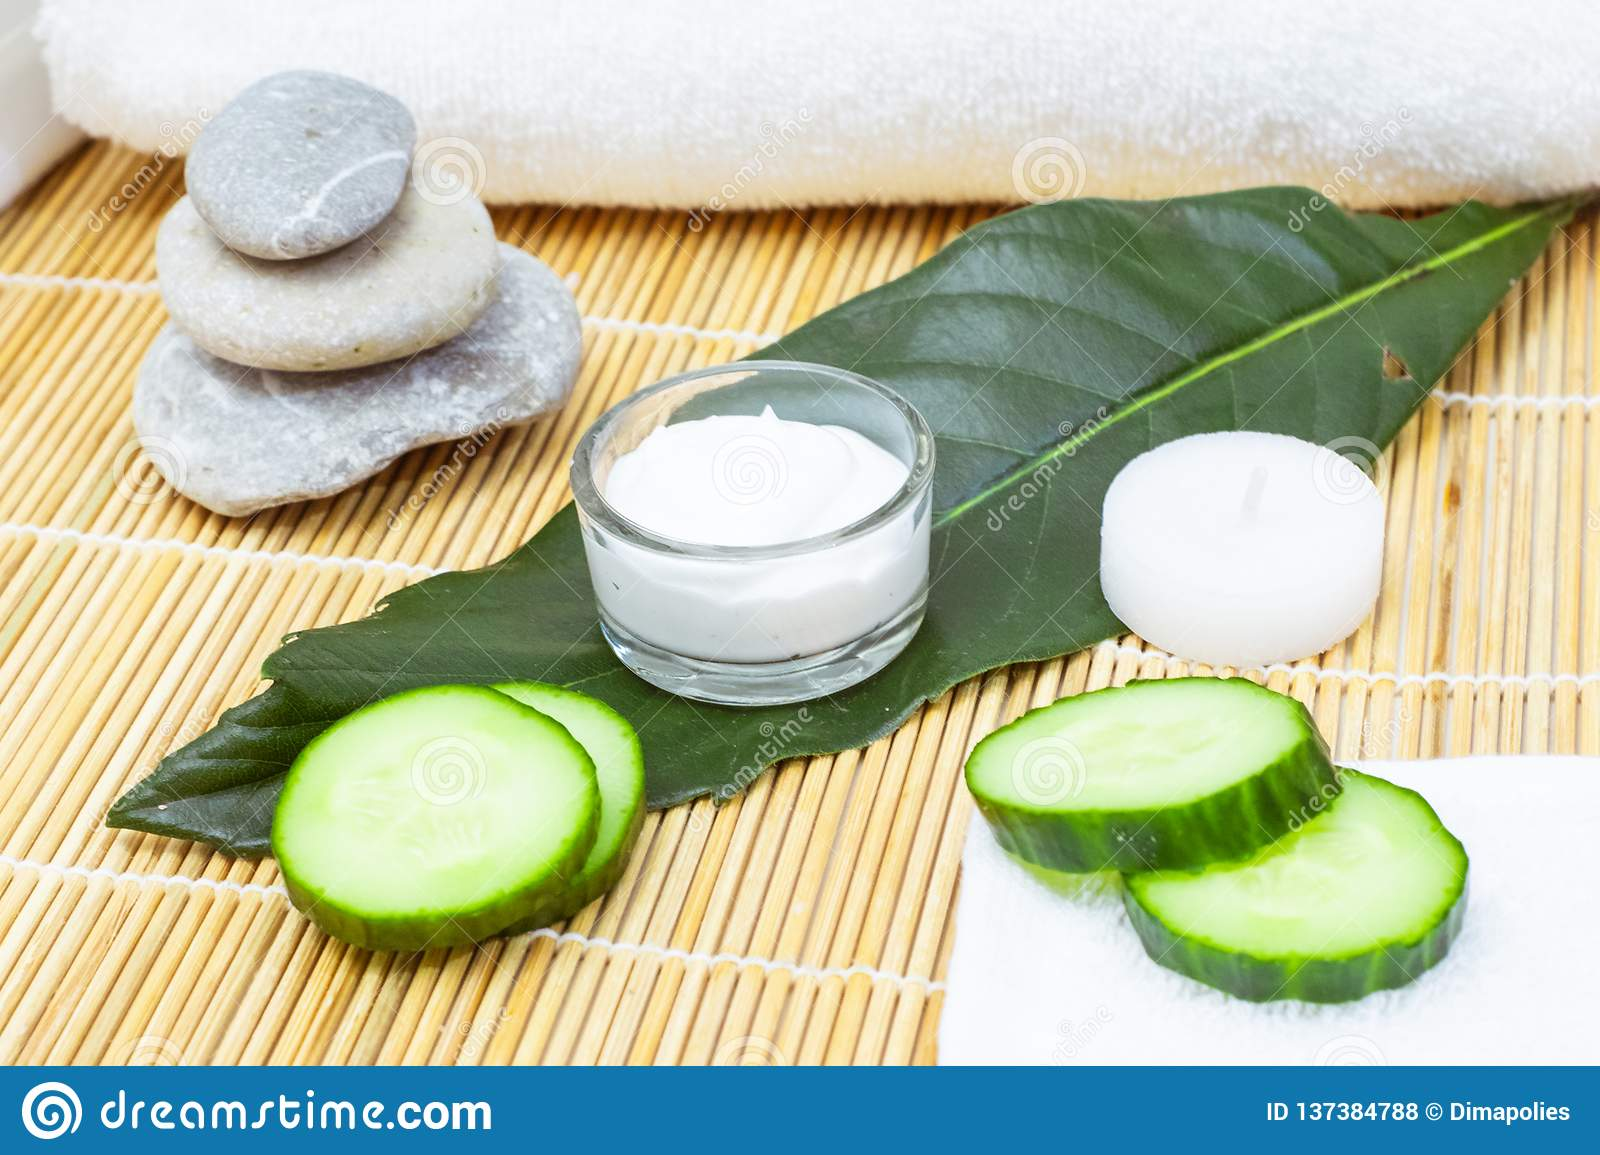 Natural Skin Care Products  View Ingredients On Table Concept Of The